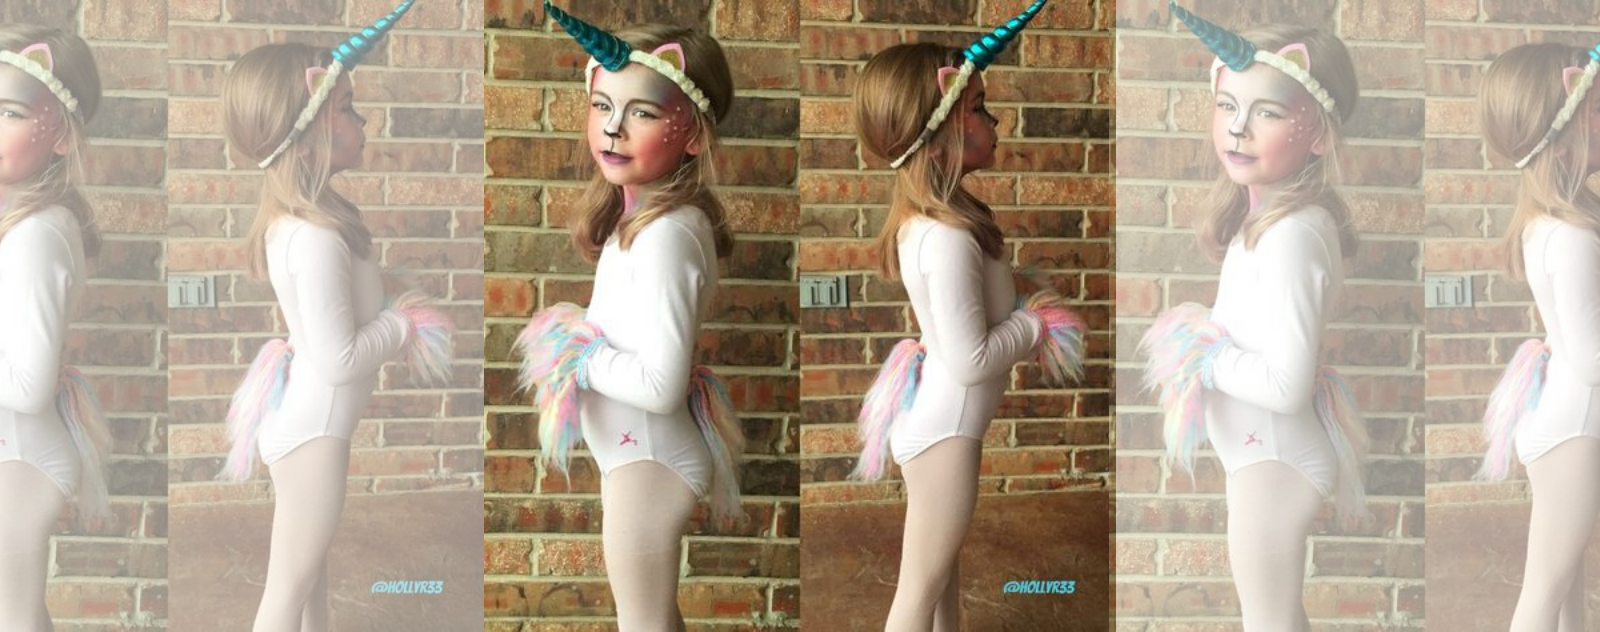 Maquillage licorne enfant